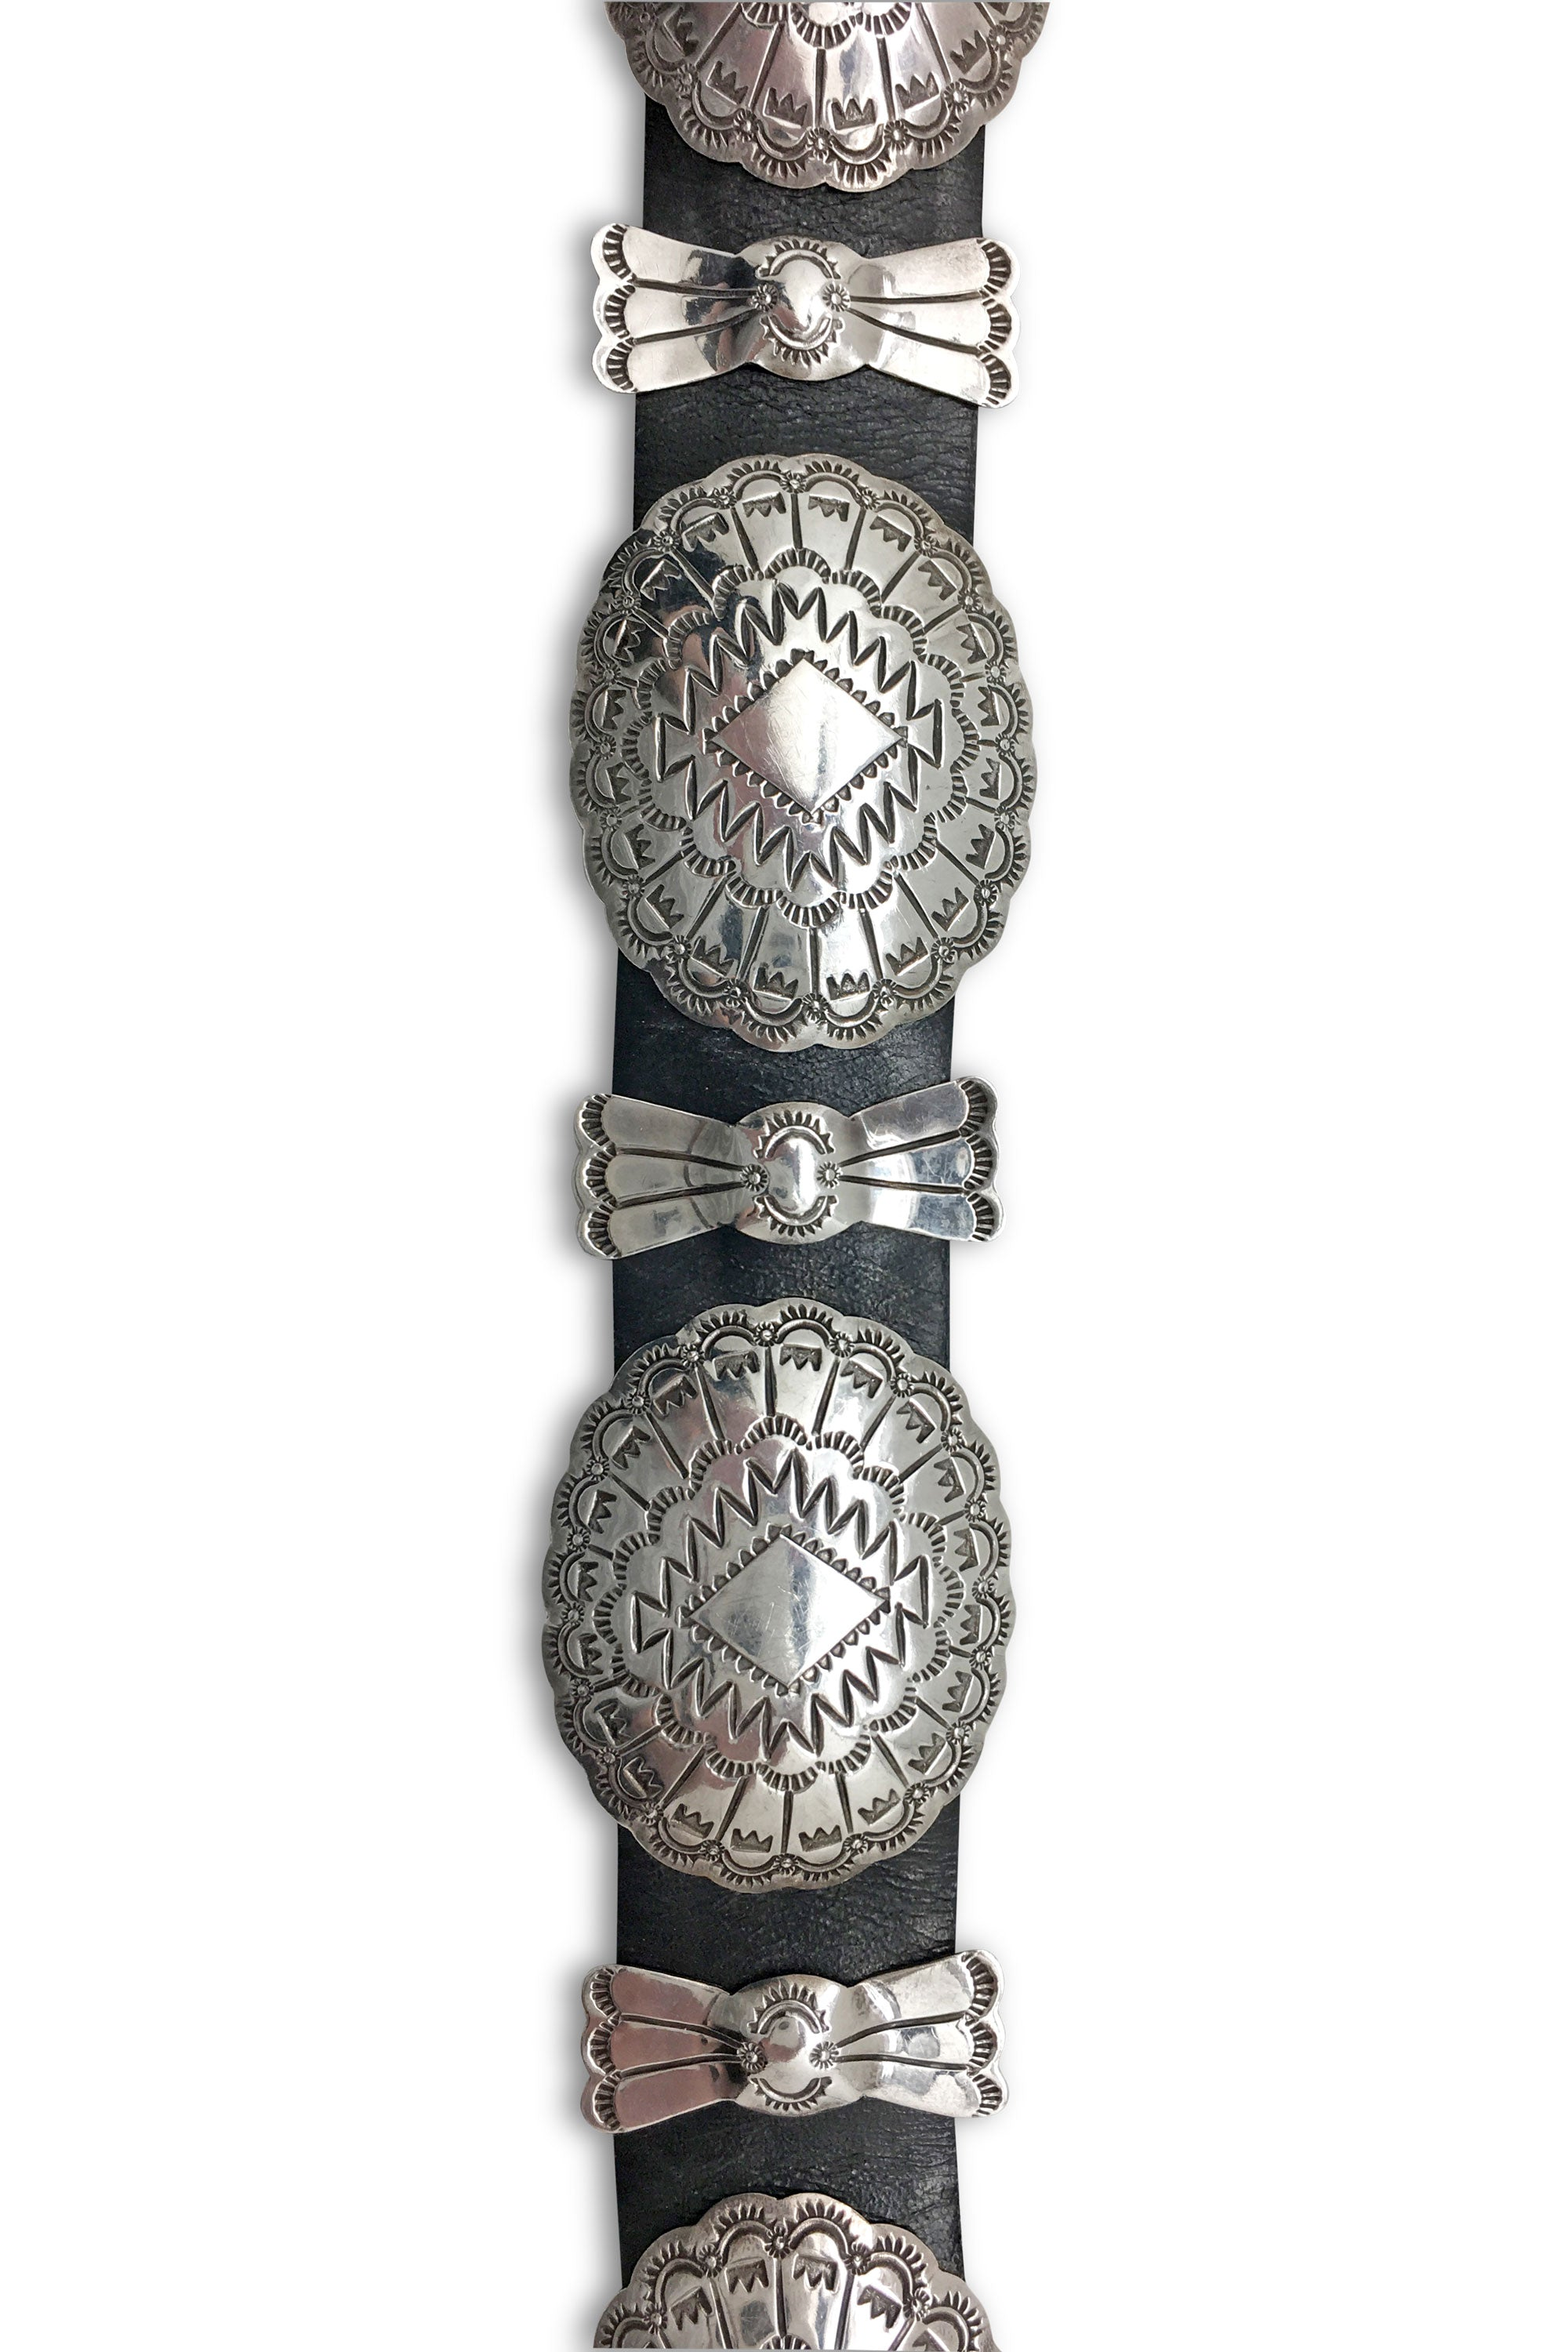 Belt, Sterling Silver, Concho & Butterfly, Old Pawn, Hallmark